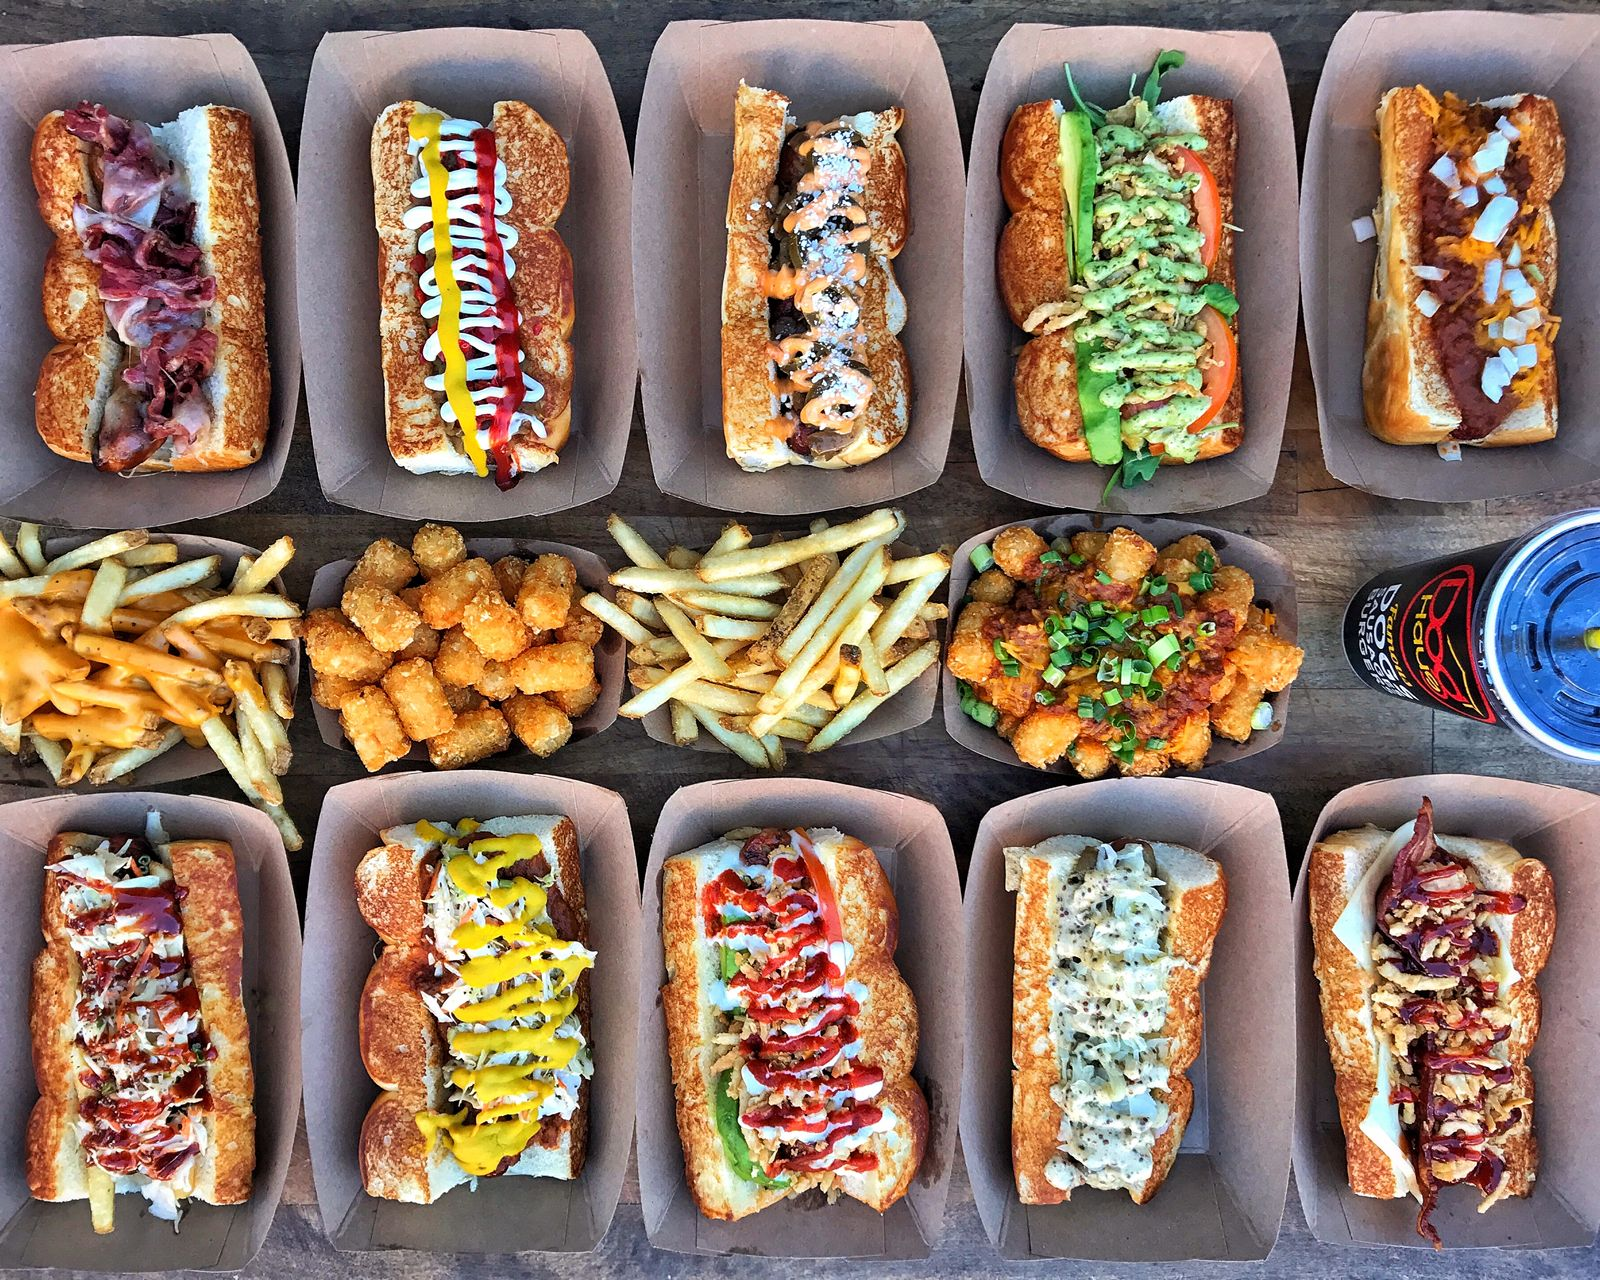 Dog Haus Celebrates the Grand Opening of Its First Glendora Location